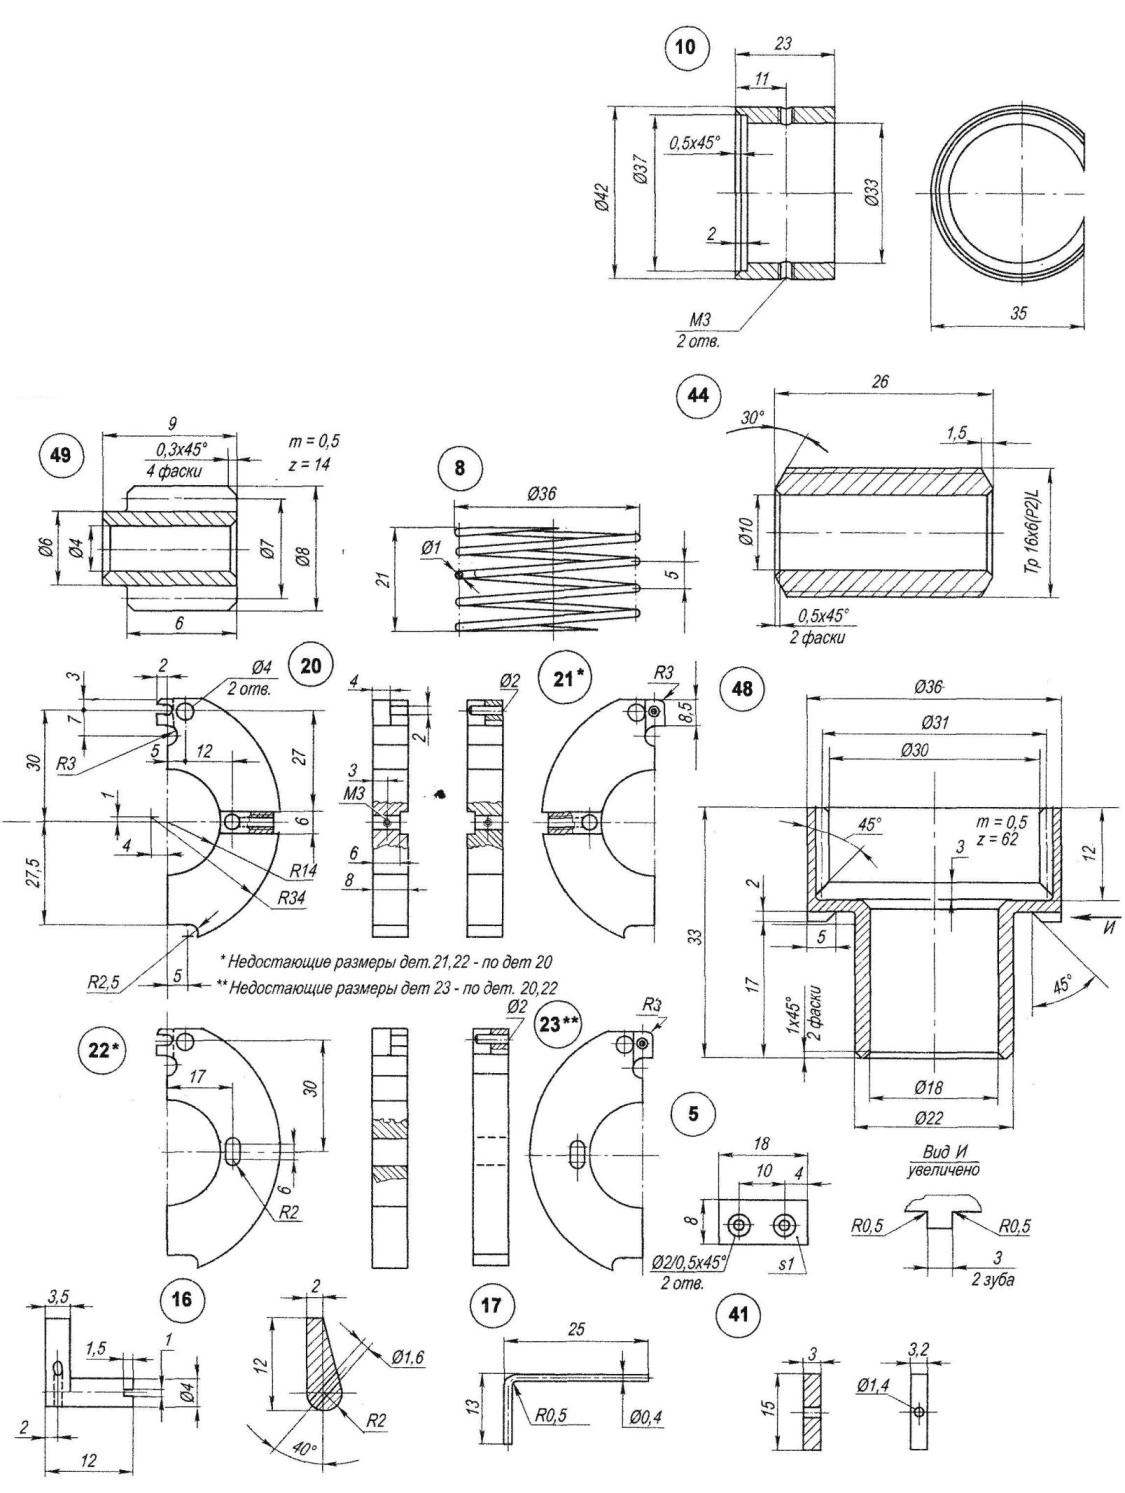 Fig. 2. Multi-speed hub with automatic gear shifting